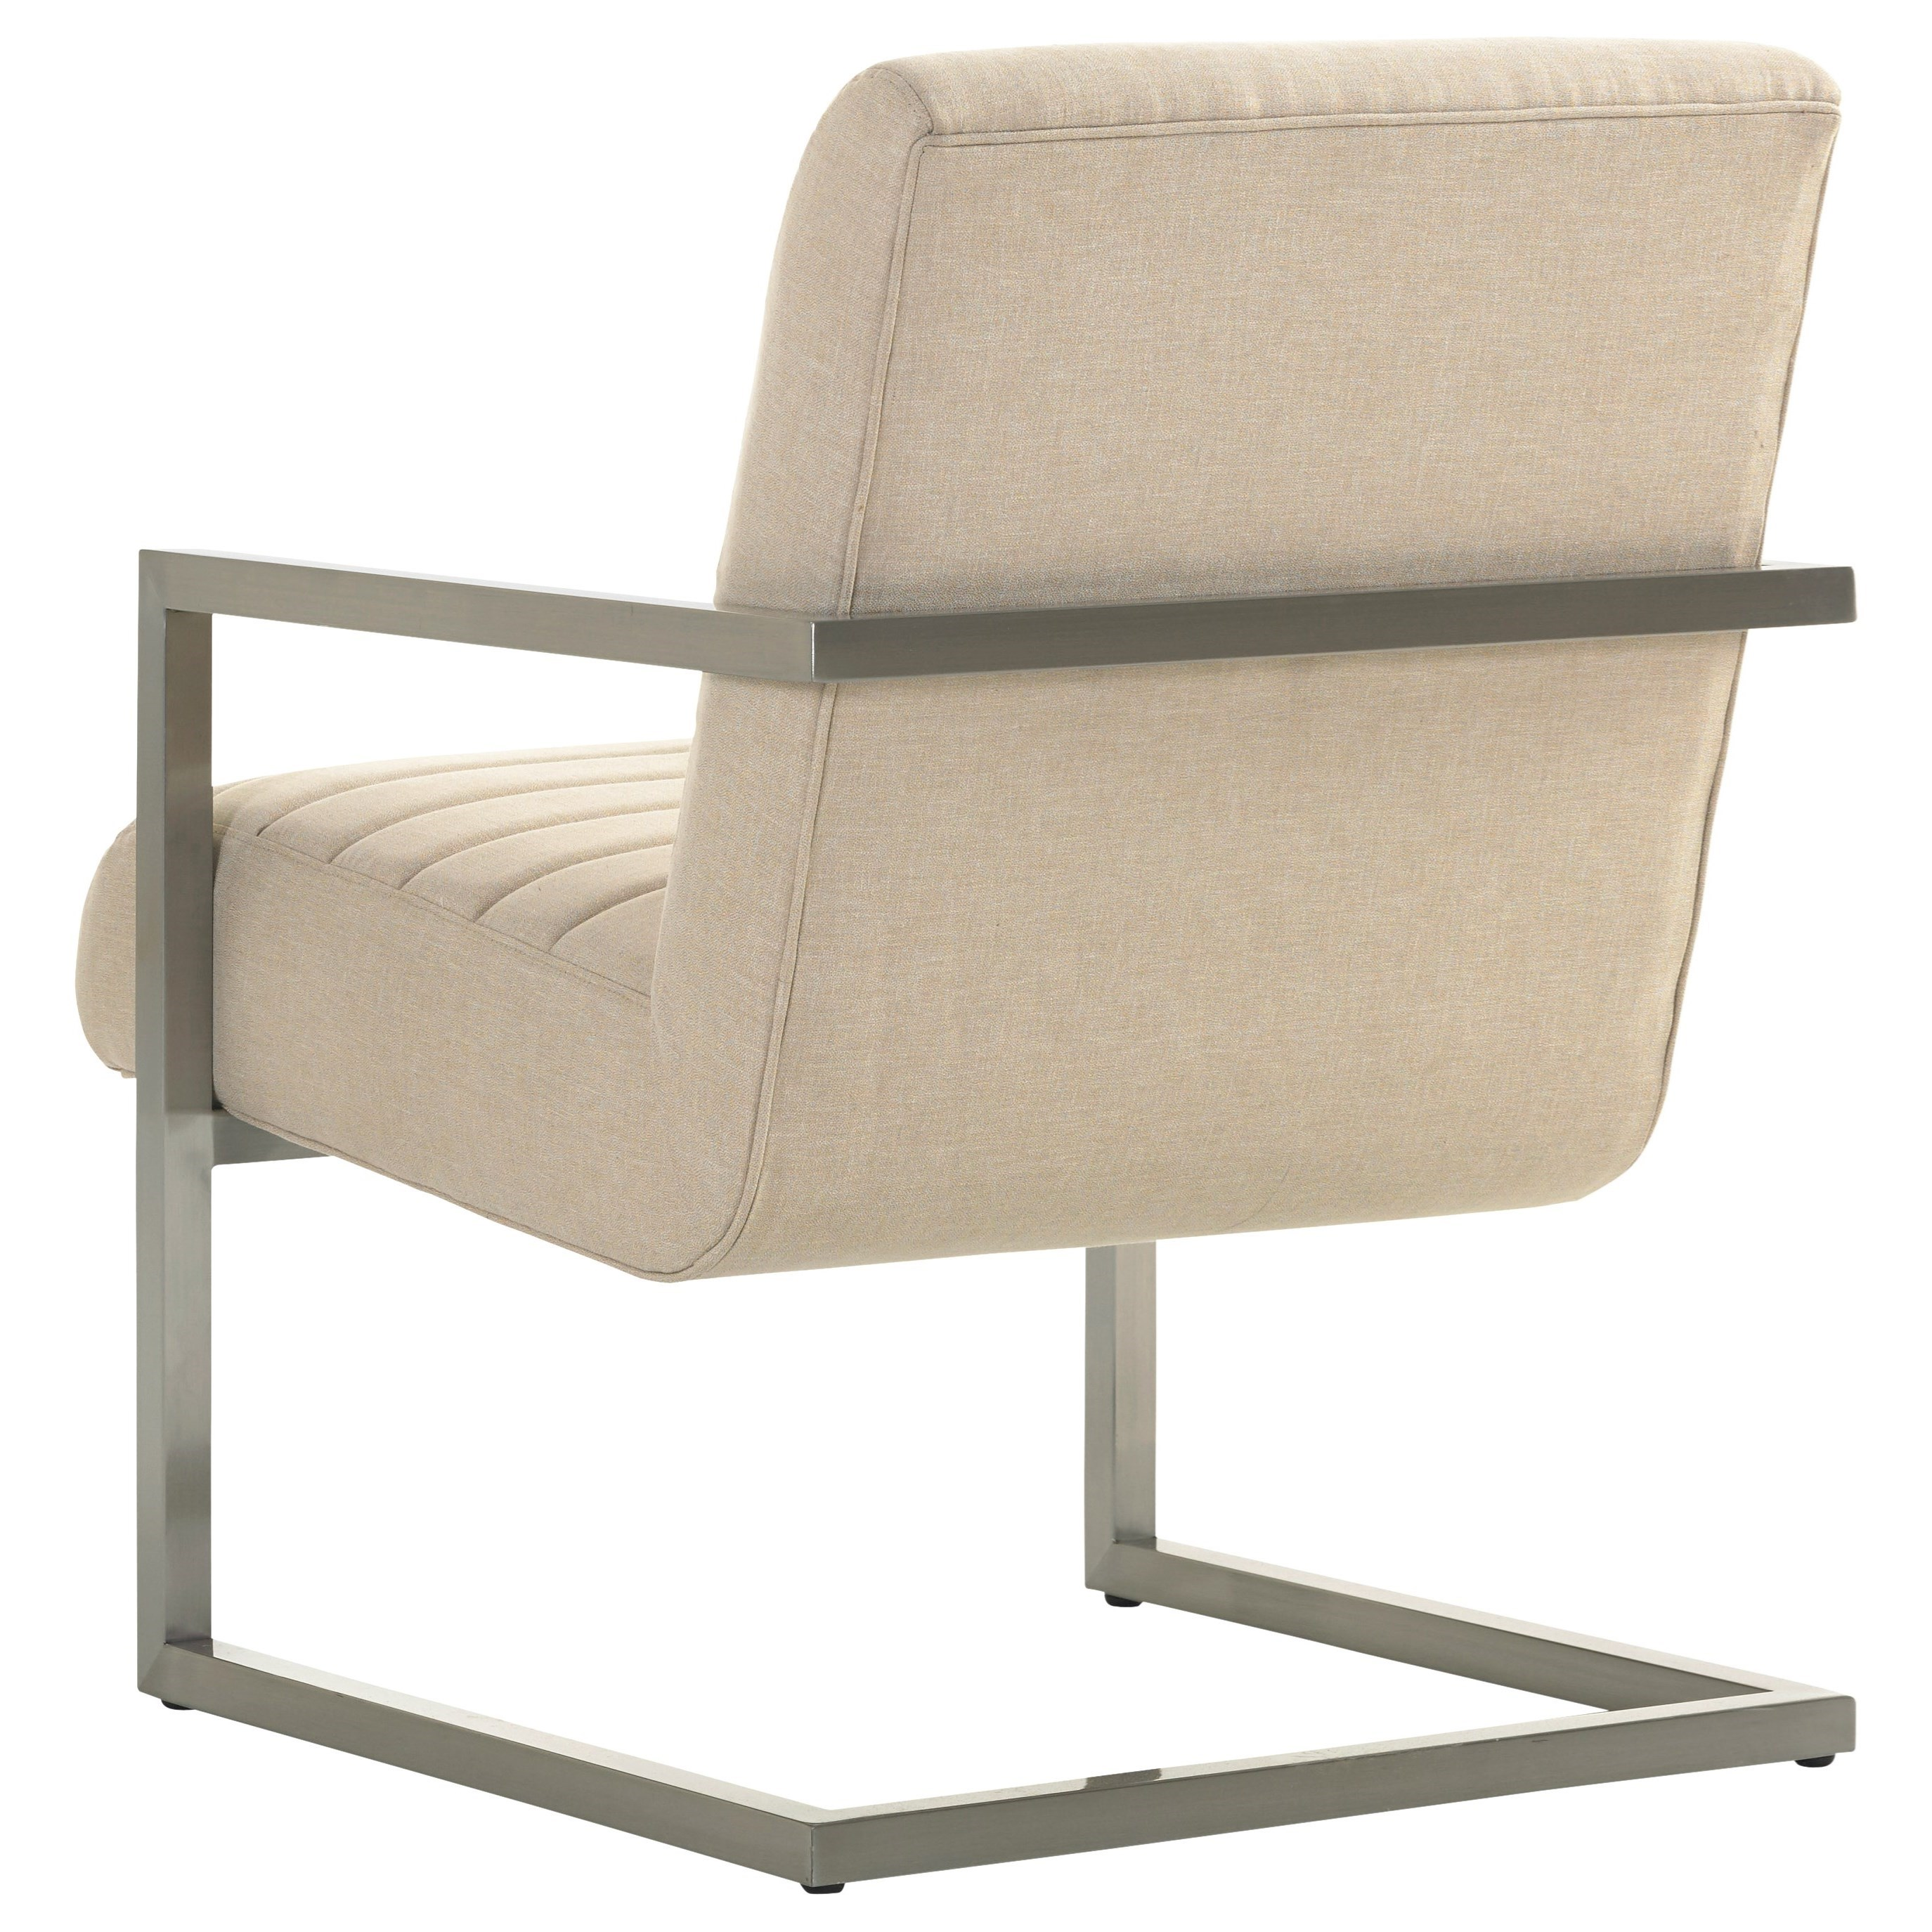 Lexington Macarthur Park 1824 11 Chatsworth Cantilever Chair Baer S Furniture Upholstered Chairs